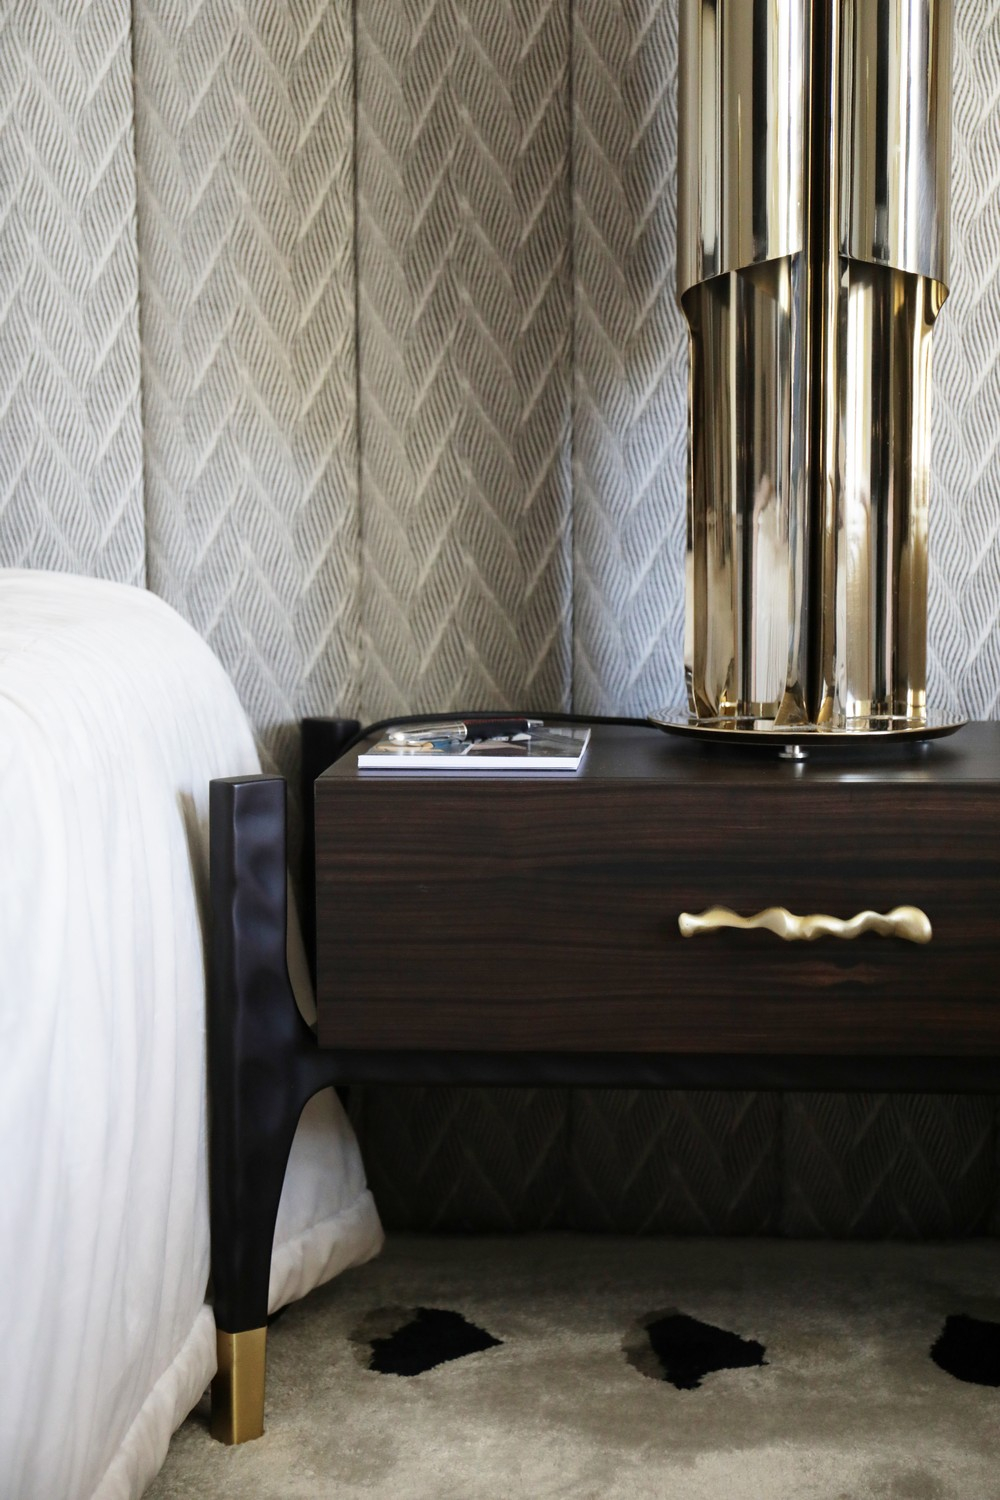 Renew Your Bedroom Furniture Designs with Decorative Hardware 4 bedroom furniture Renew Your Bedroom Furniture Designs with Decorative Hardware Renew Your Bedroom Furniture Designs with Decorative Hardware 4